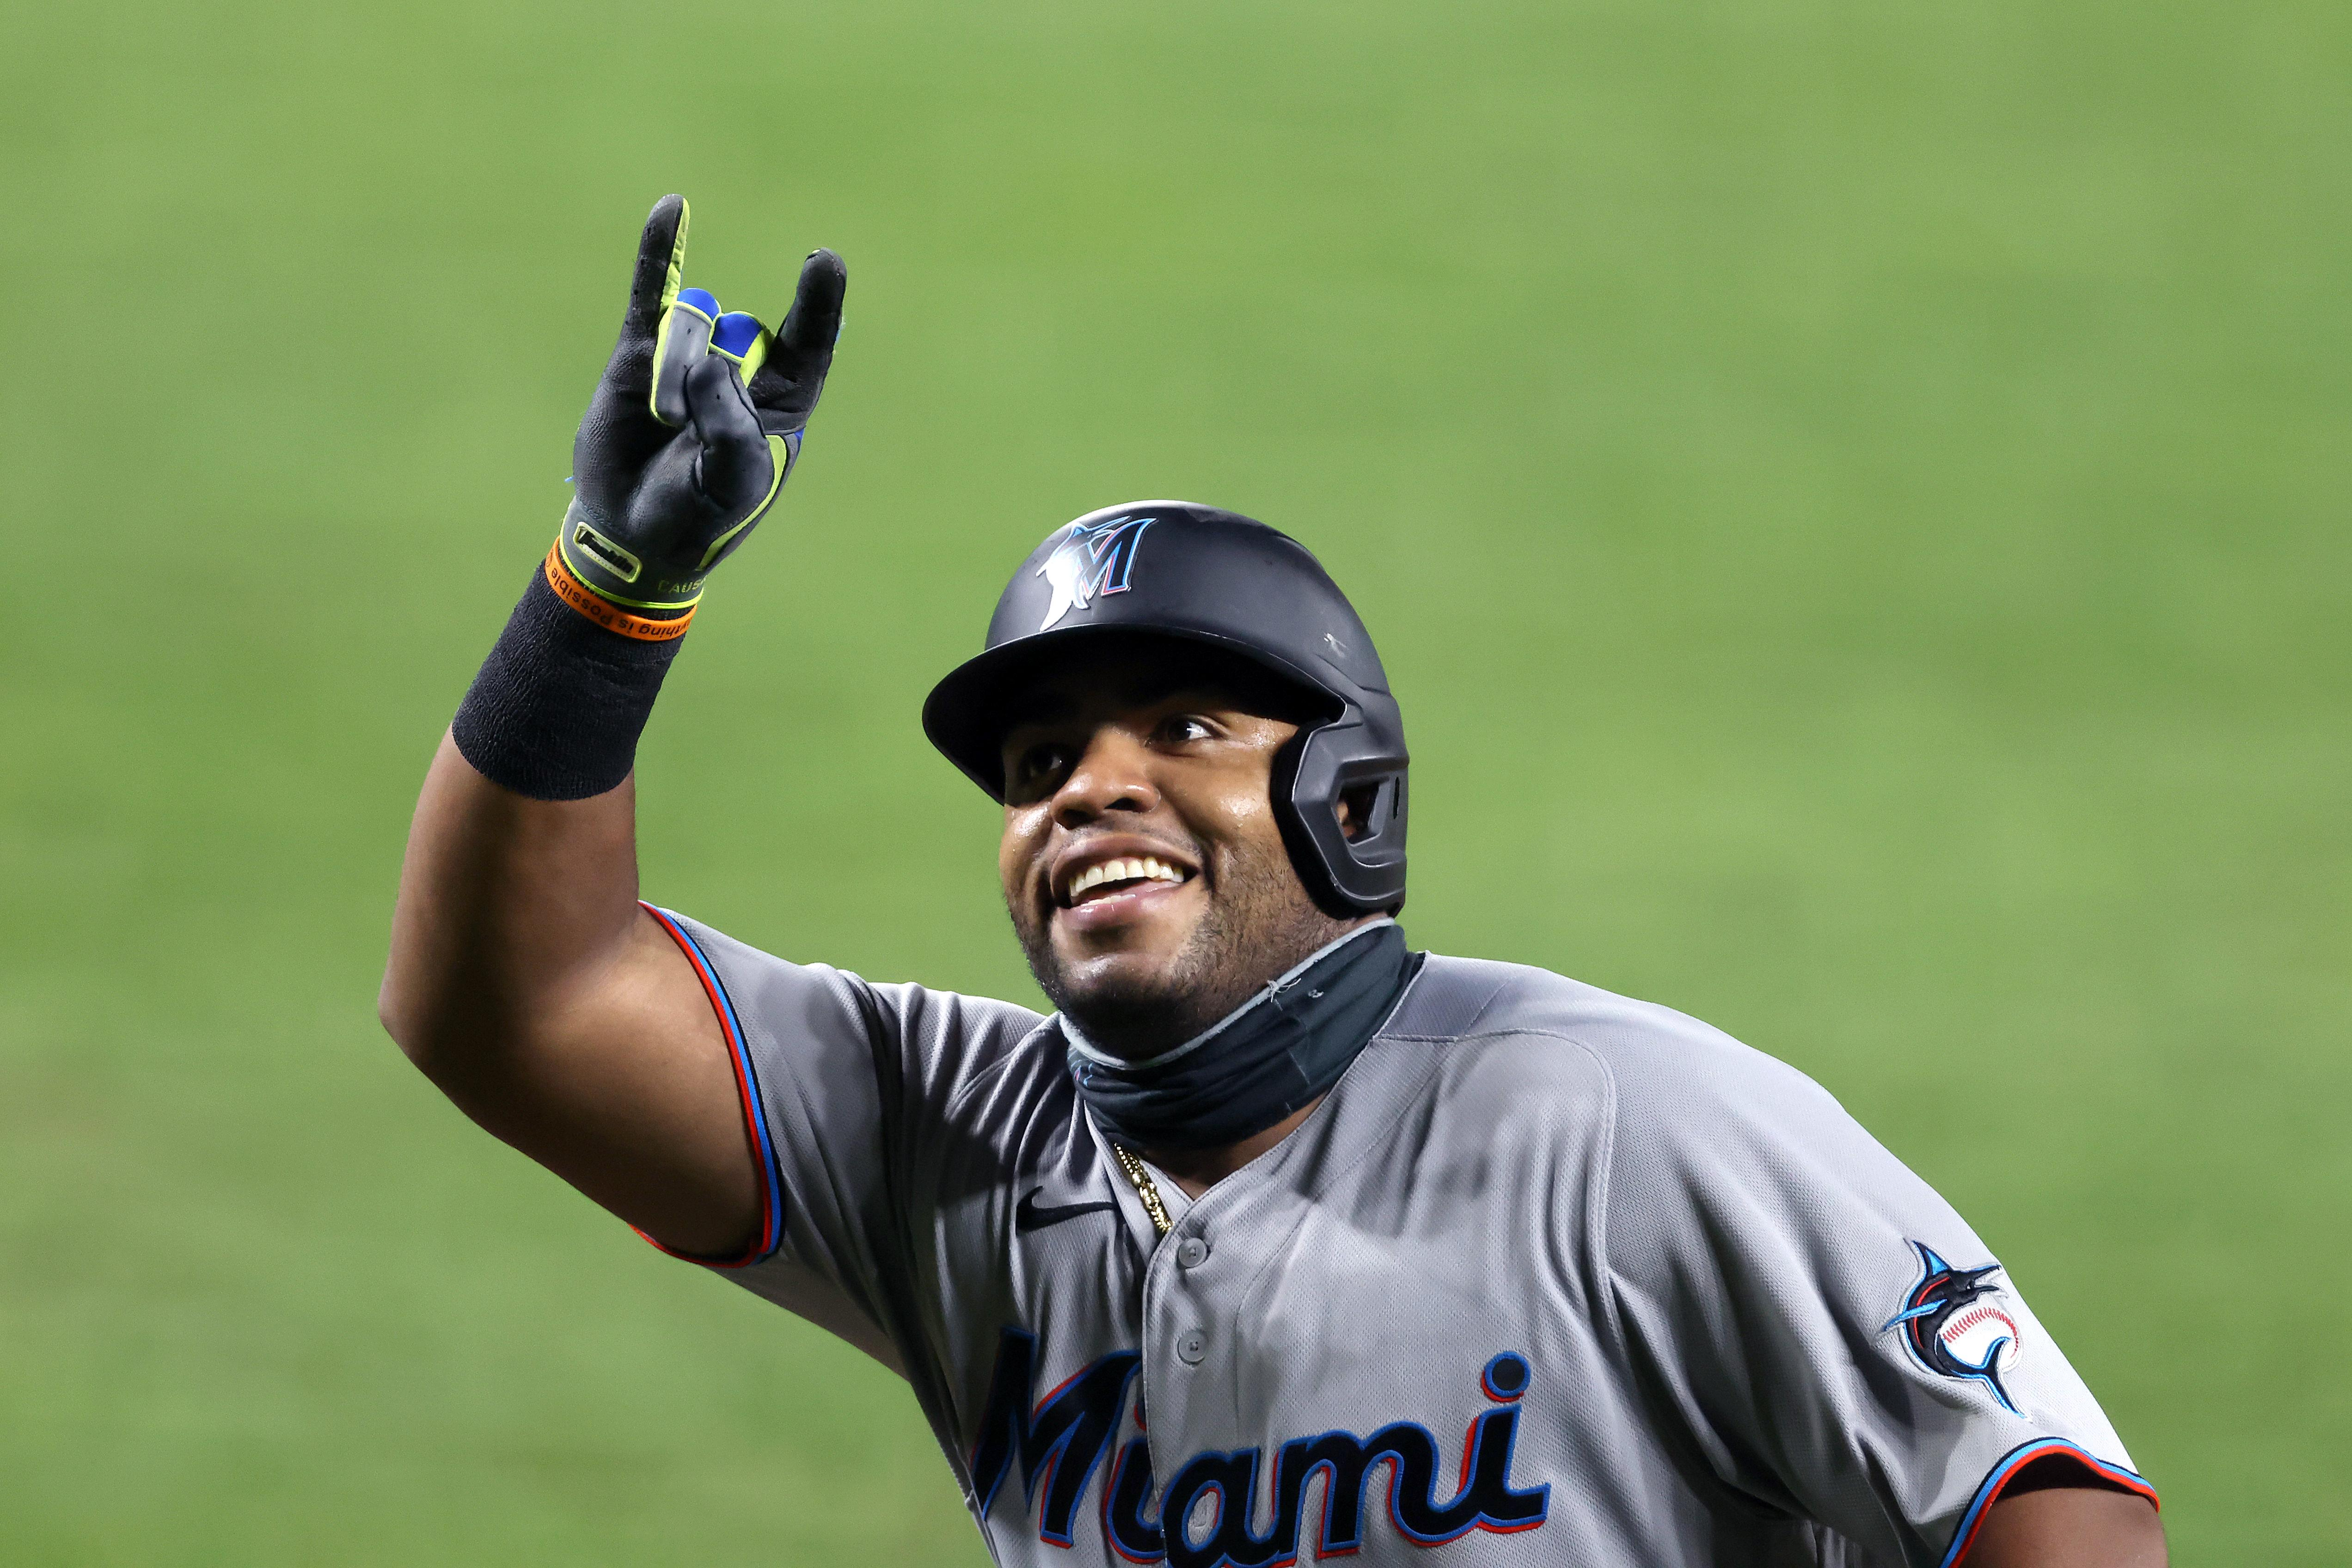 Fantasy Baseball Waiver Wire Pickups: Jesus Aguilar is back to his old ways